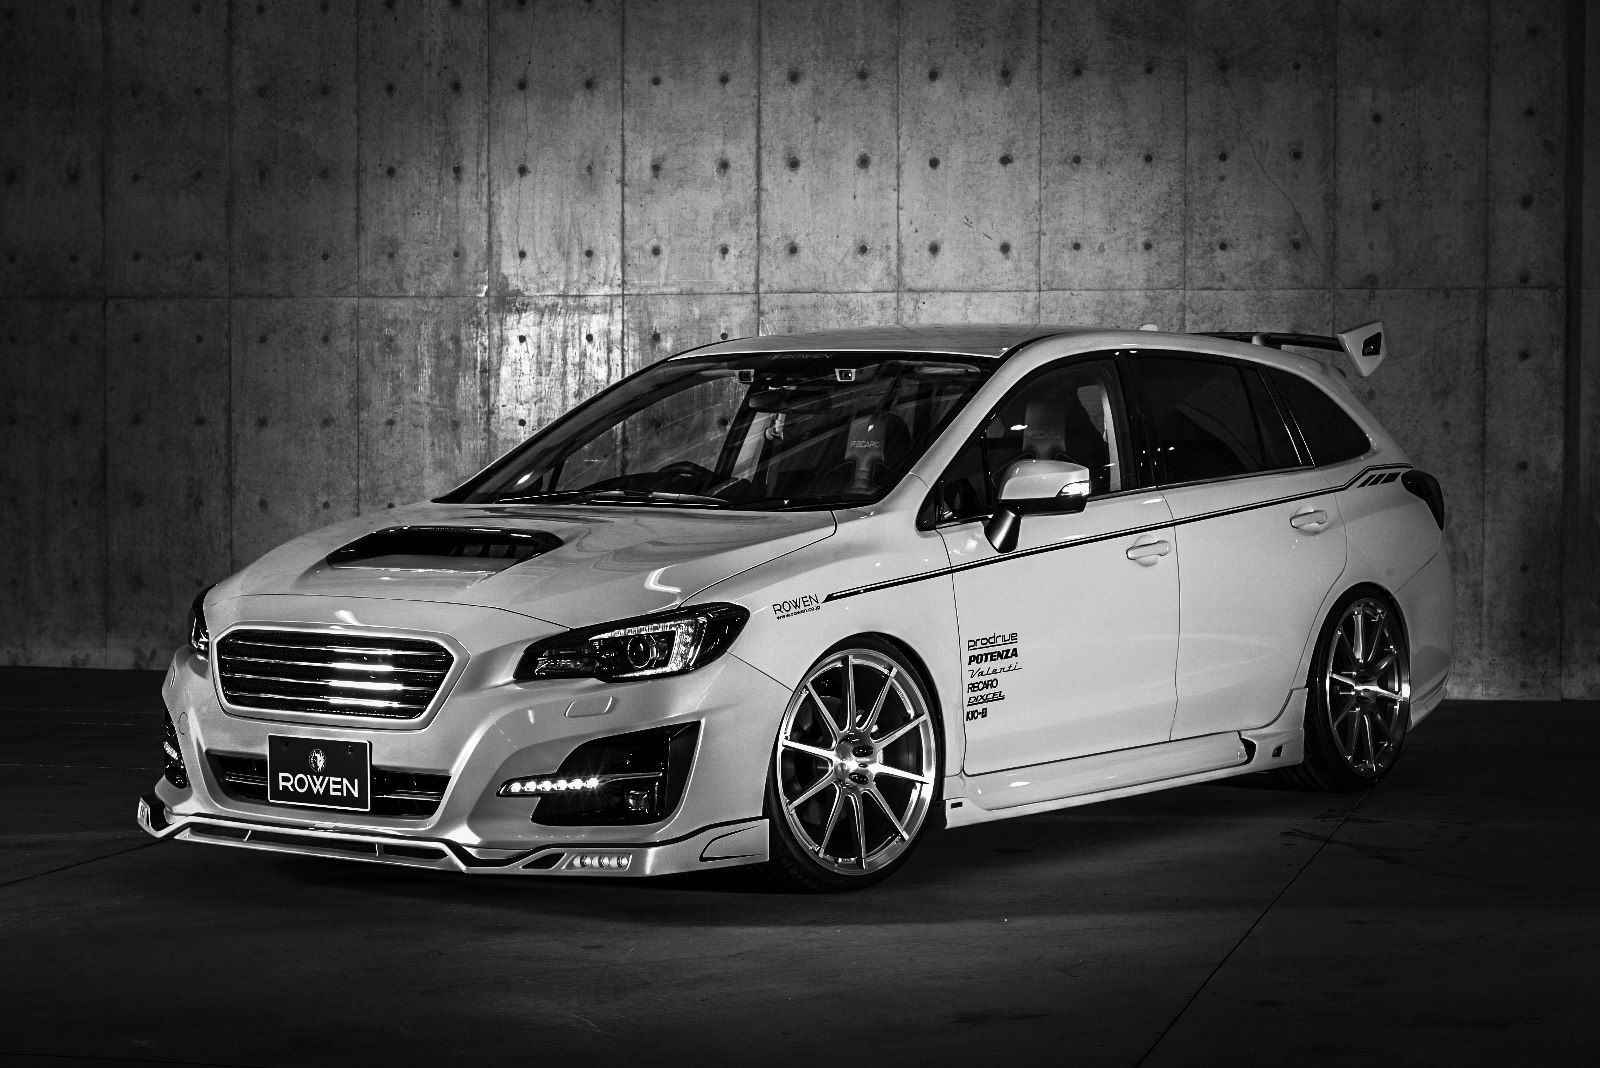 Subaru Levorg Bodykit And Exhaust System By Rowen